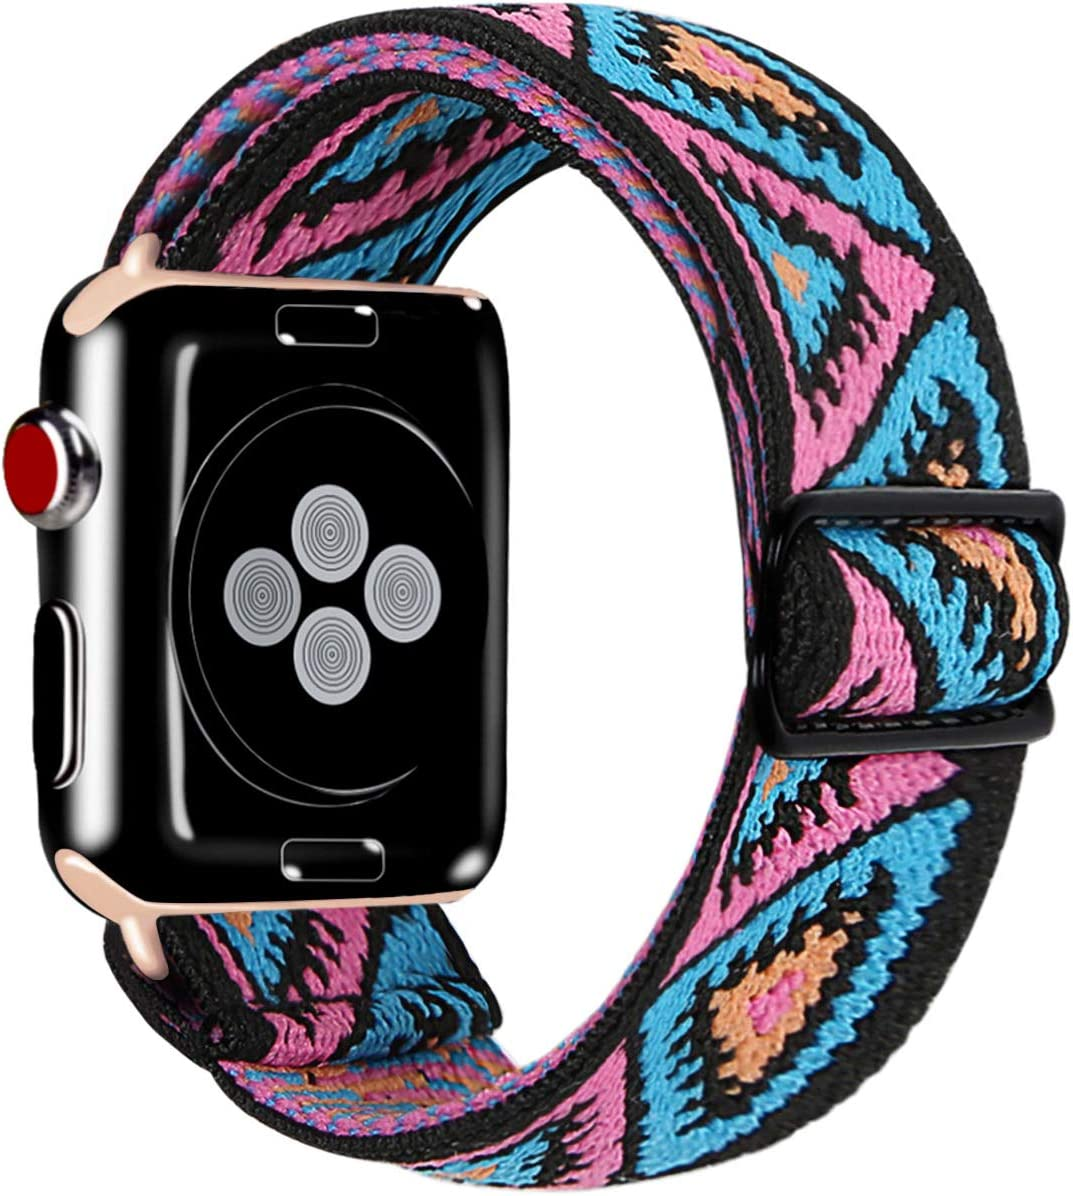 Kraftychix Adjustable Elastic Watch Band Compatible for Apple Watch 42MM/44MM,Women Stretch Boho Sport Watch Strap Bracelet Replacement Wristband for Iwatch Series 1/2/3/4/5(Pink Flag,42/44MM)